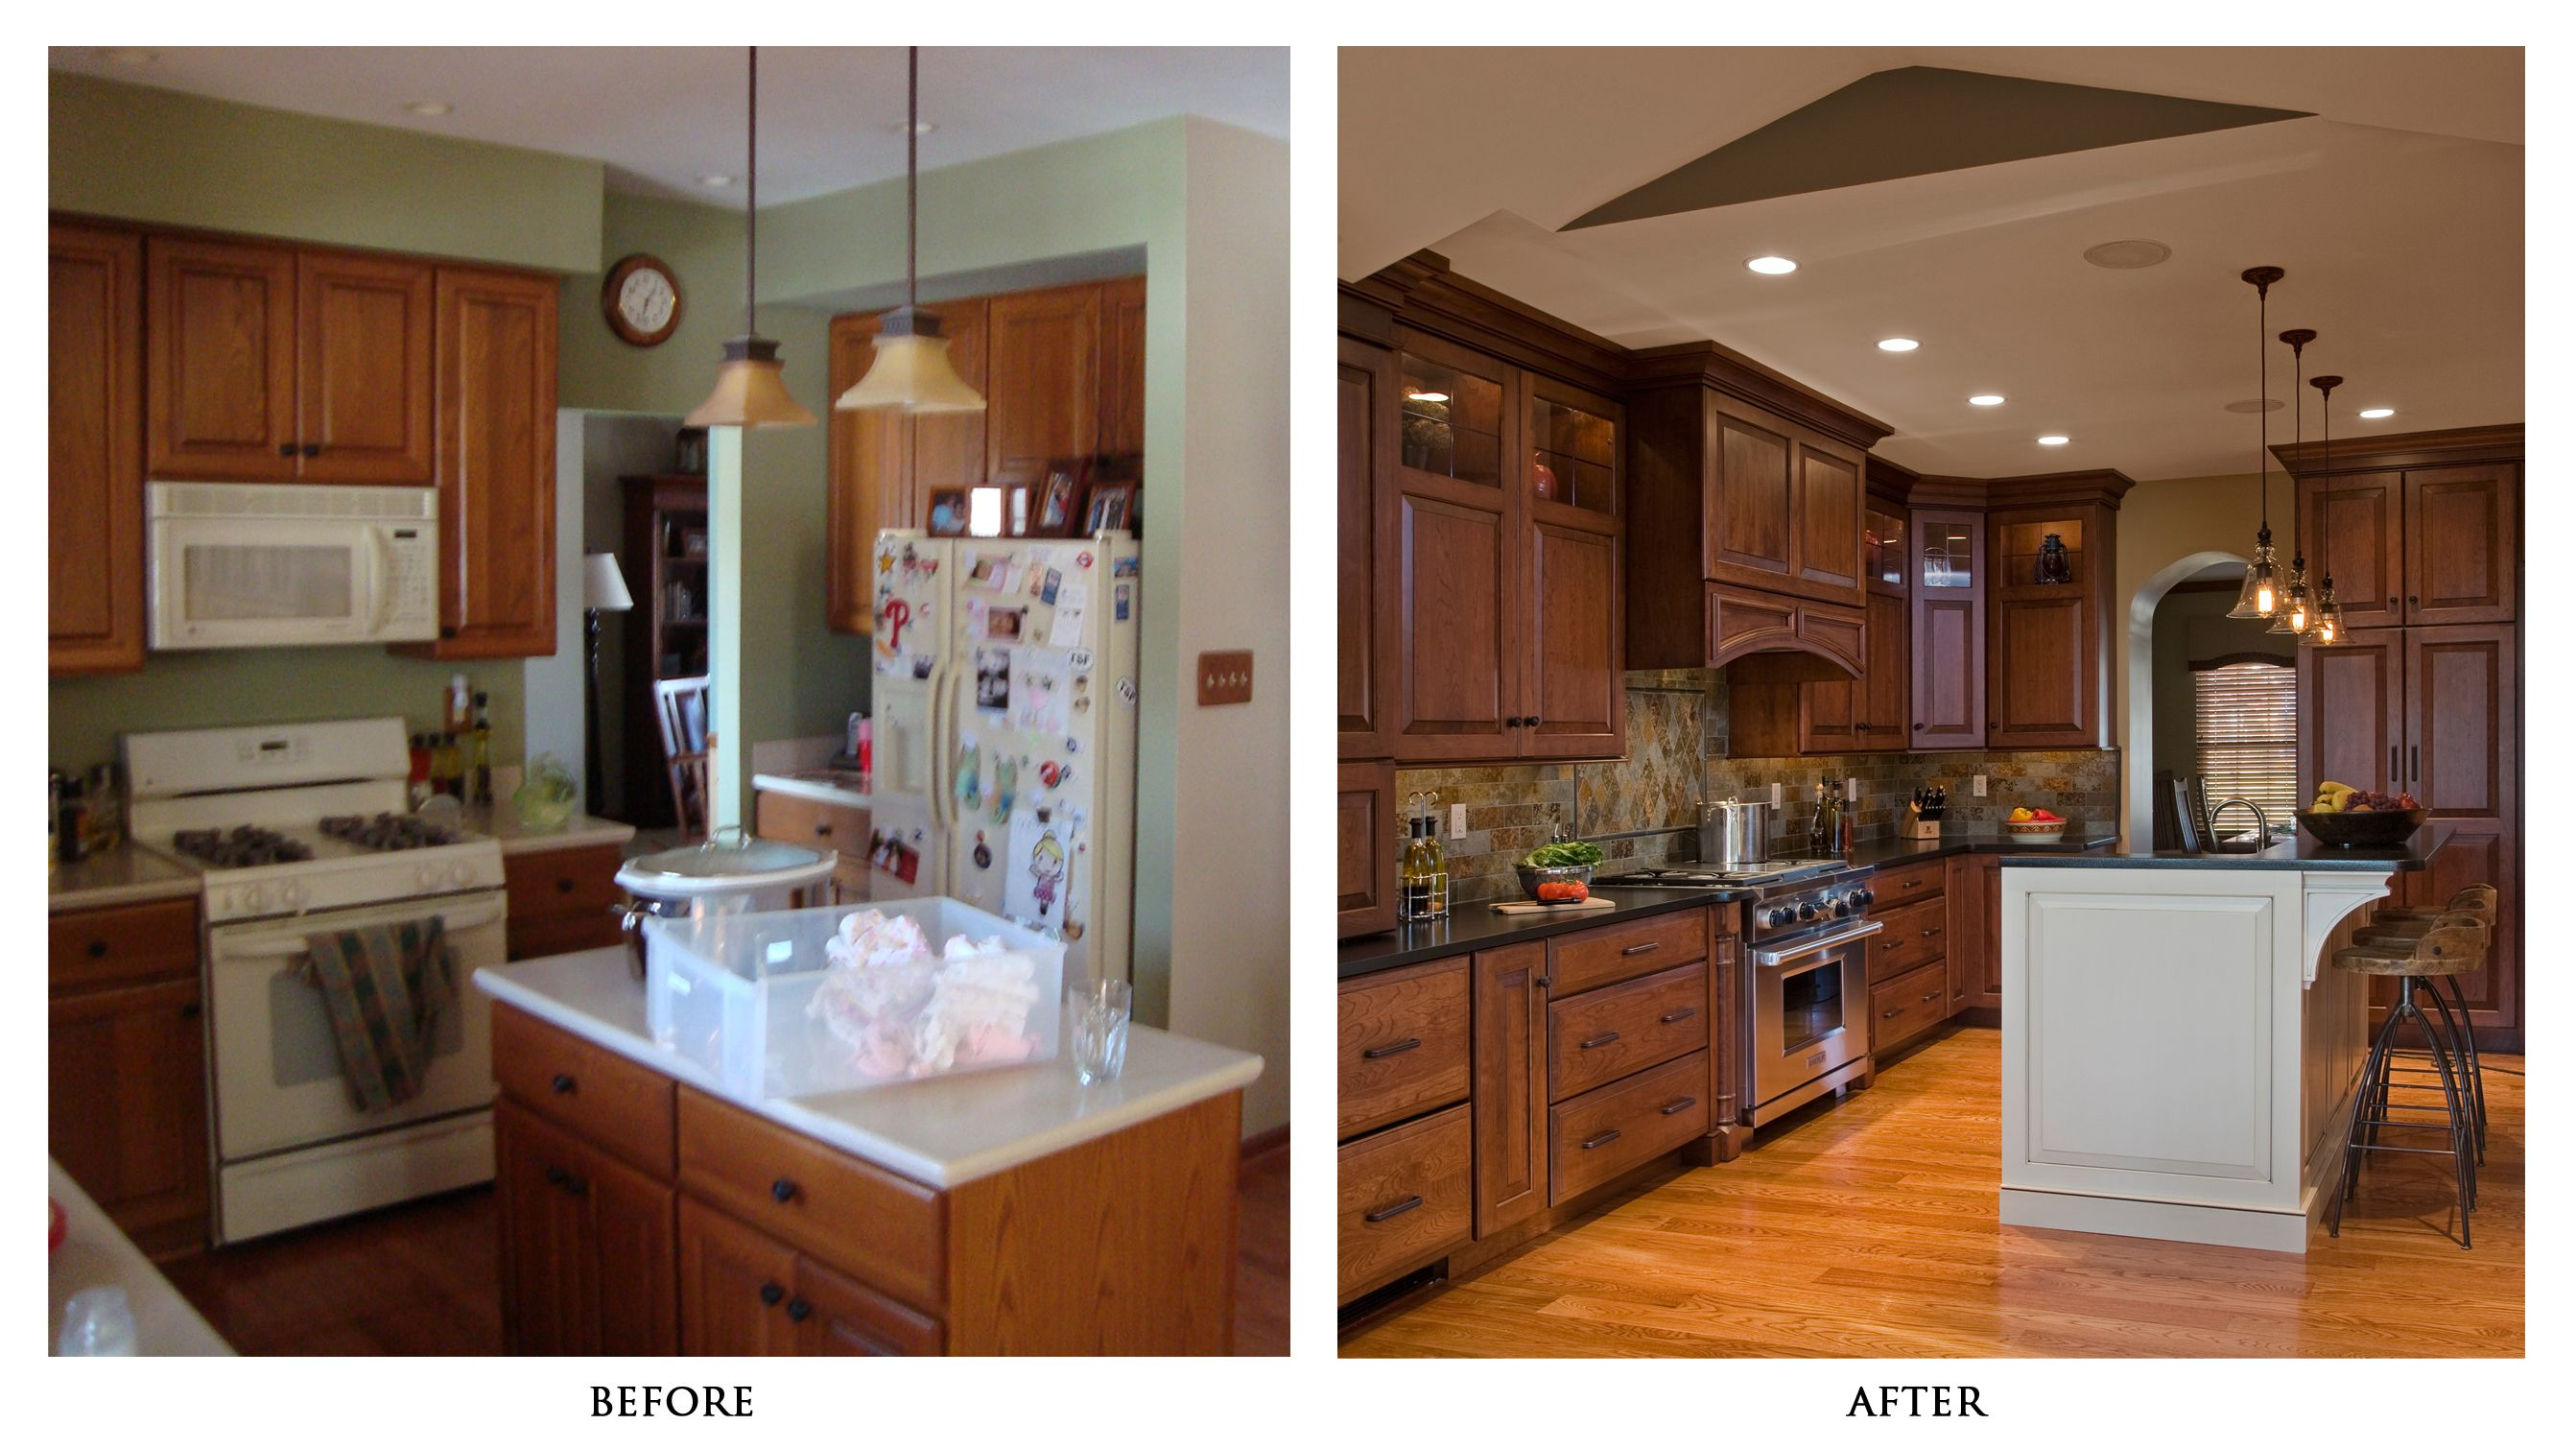 Pictures Of Remodeled Kitchens Before And Afters Kitchen Remodels Before And After Photos  Kitchen  Pinterest